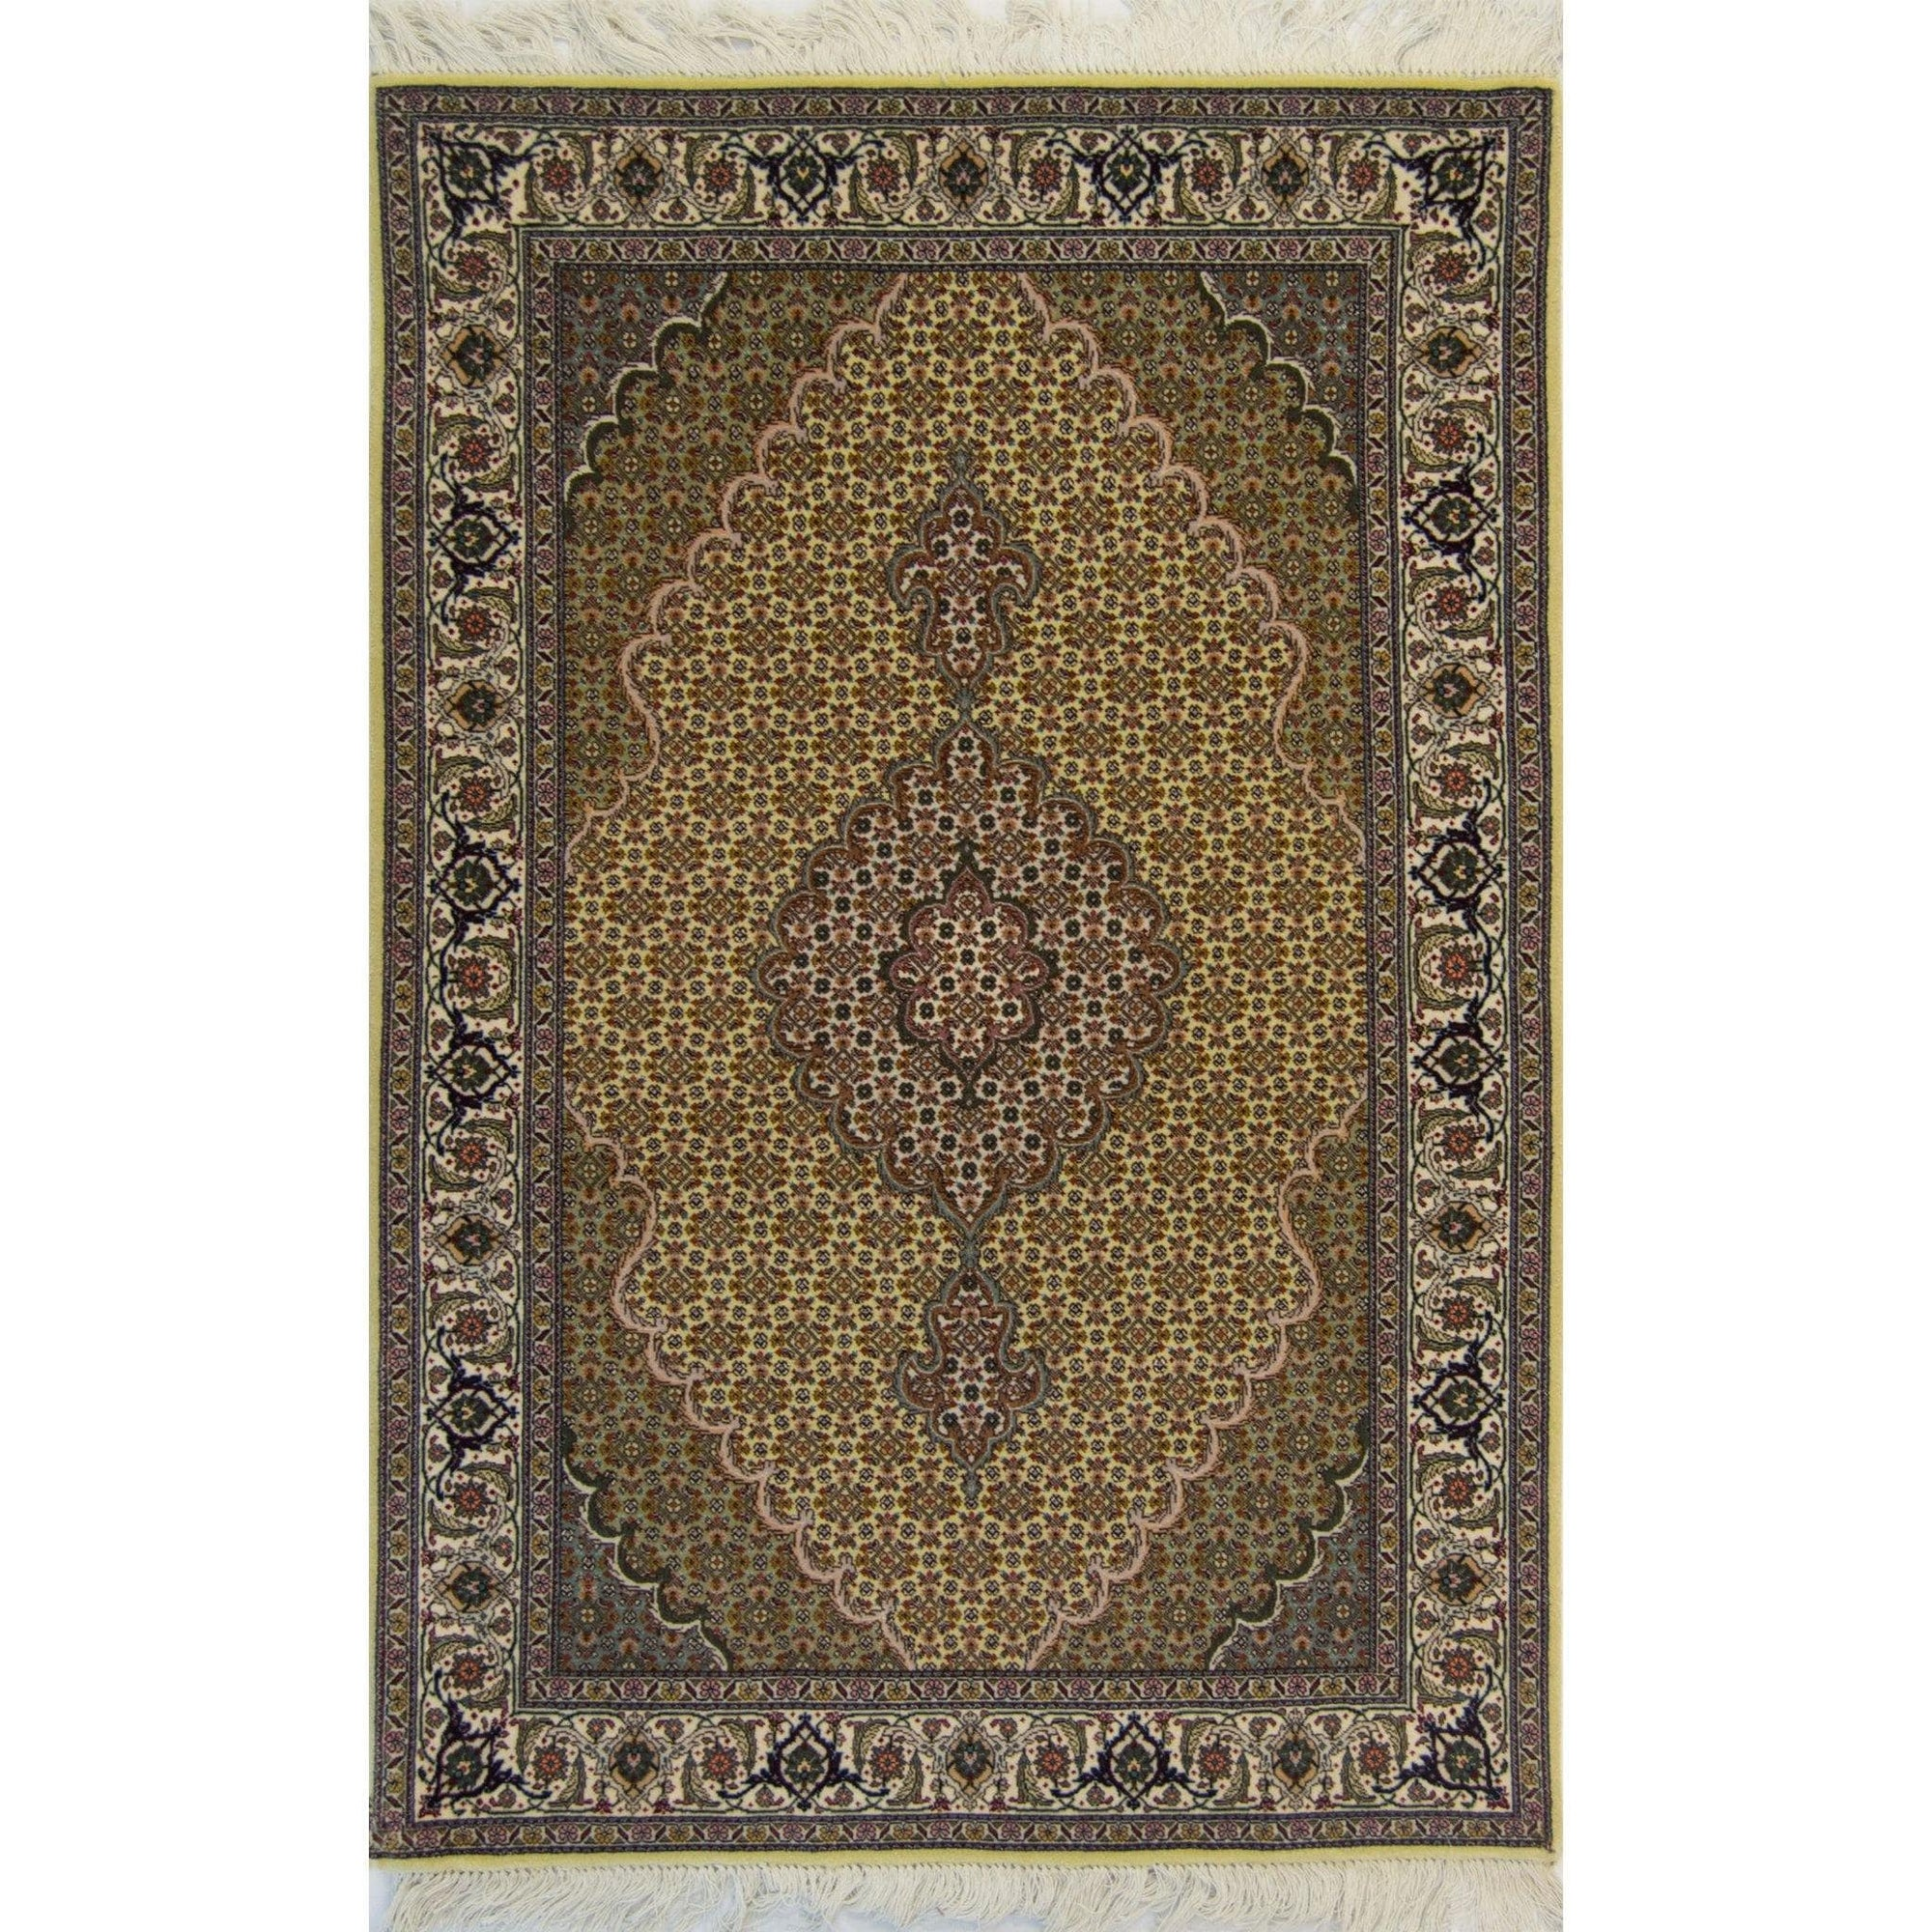 Fine Hand-knotted Persian Wool and Silk Tabriz - Mahi Rug 101cm x 155cm Persian-Rug | House-of-Haghi | NewMarket | Auckland | NZ | Handmade Persian Rugs | Hand Knotted Persian Rugs